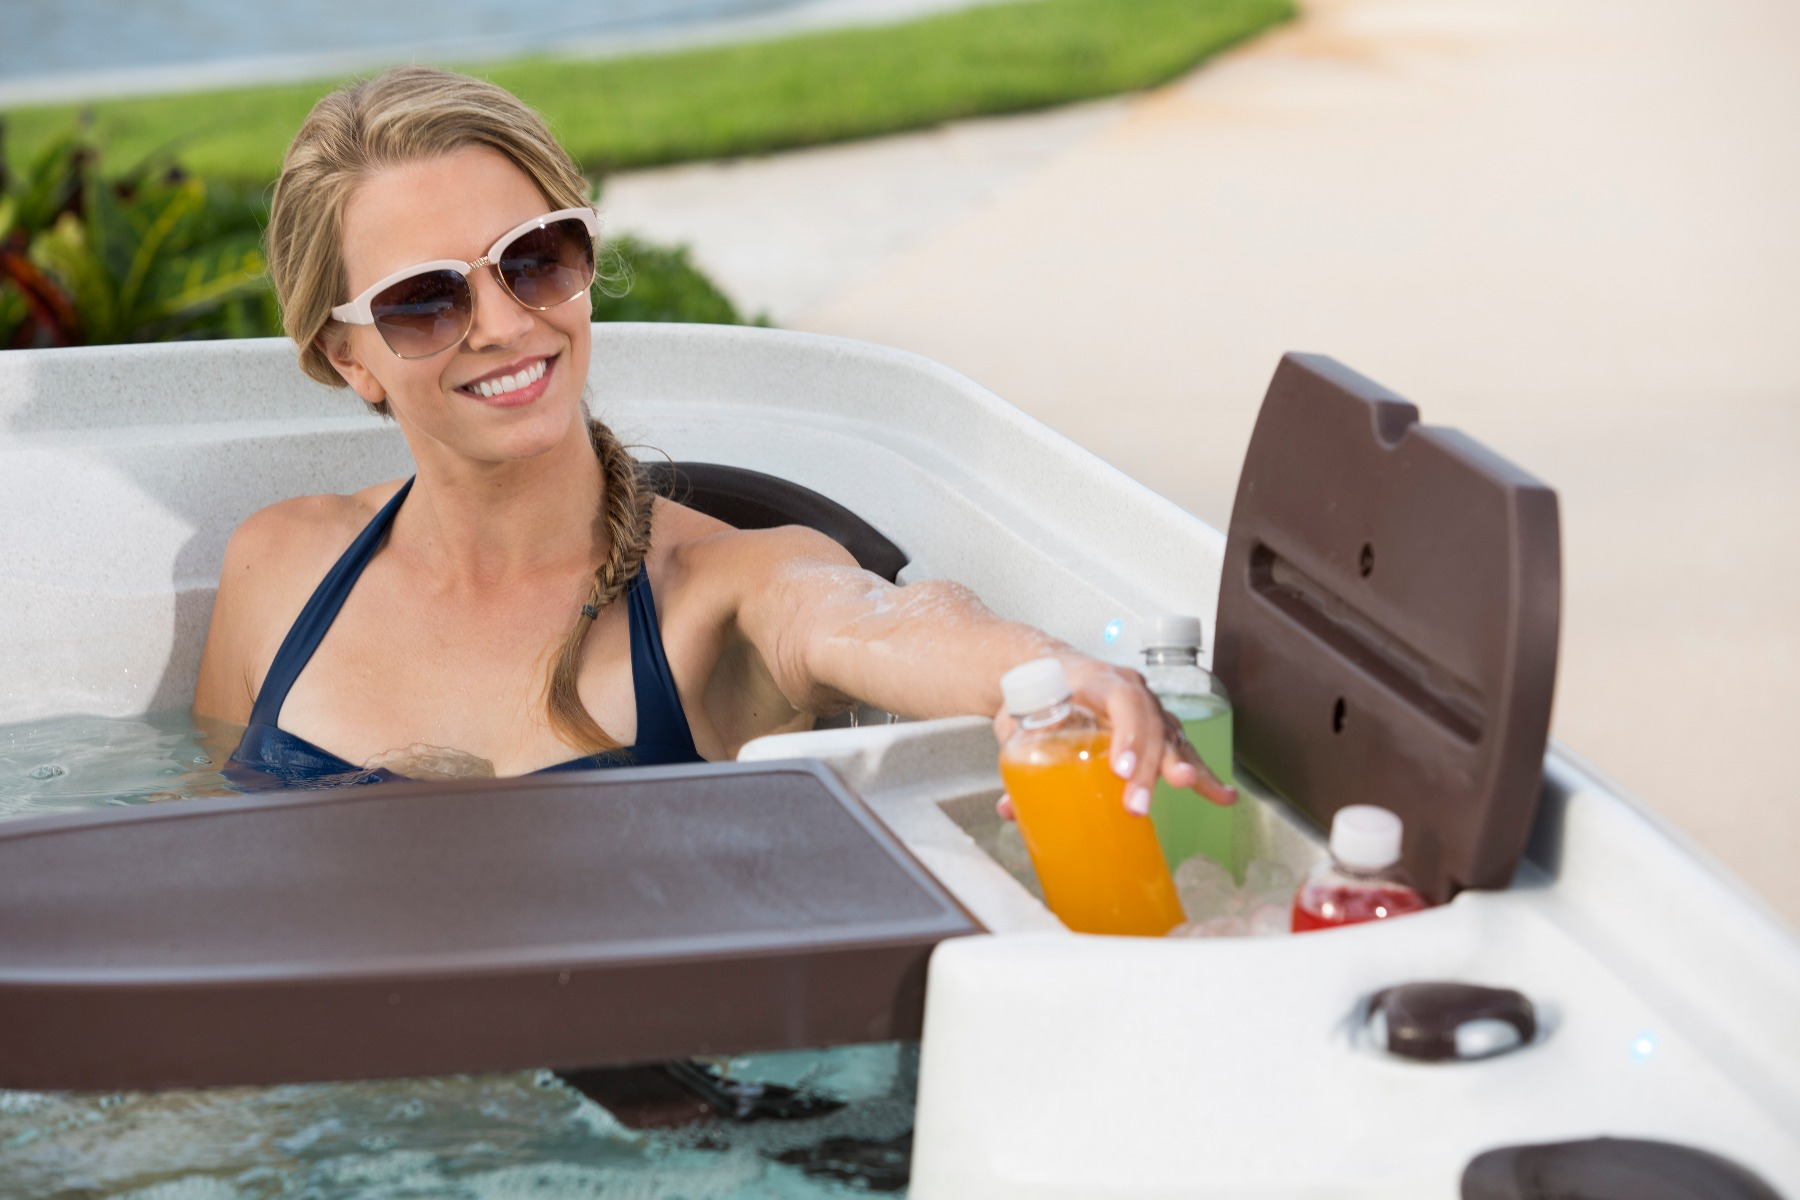 A built-in drinks cooler is perfect for keeping hydrated in your Hot Tub